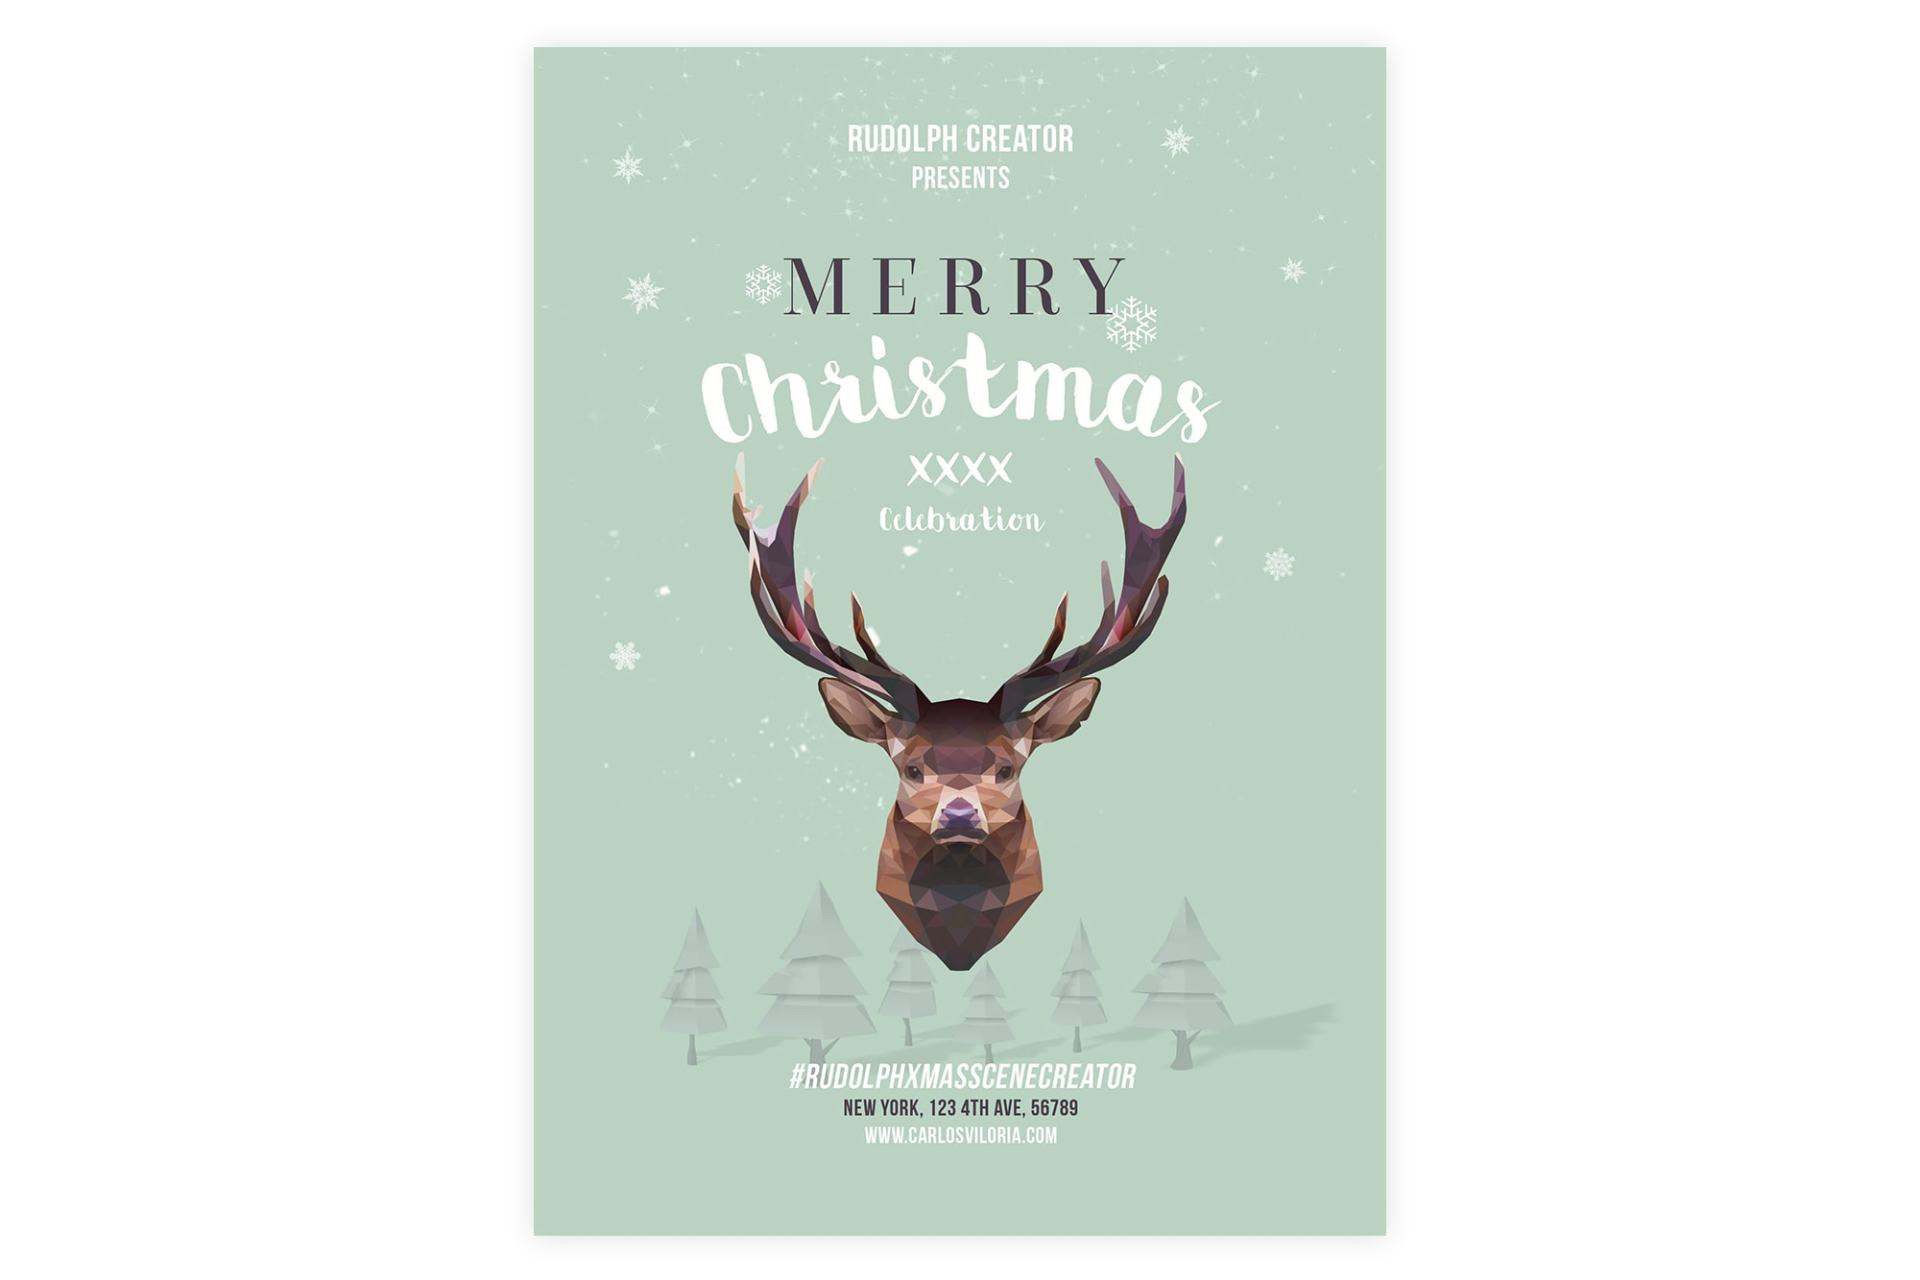 Merry Christmas Flyer - Poster Template 03